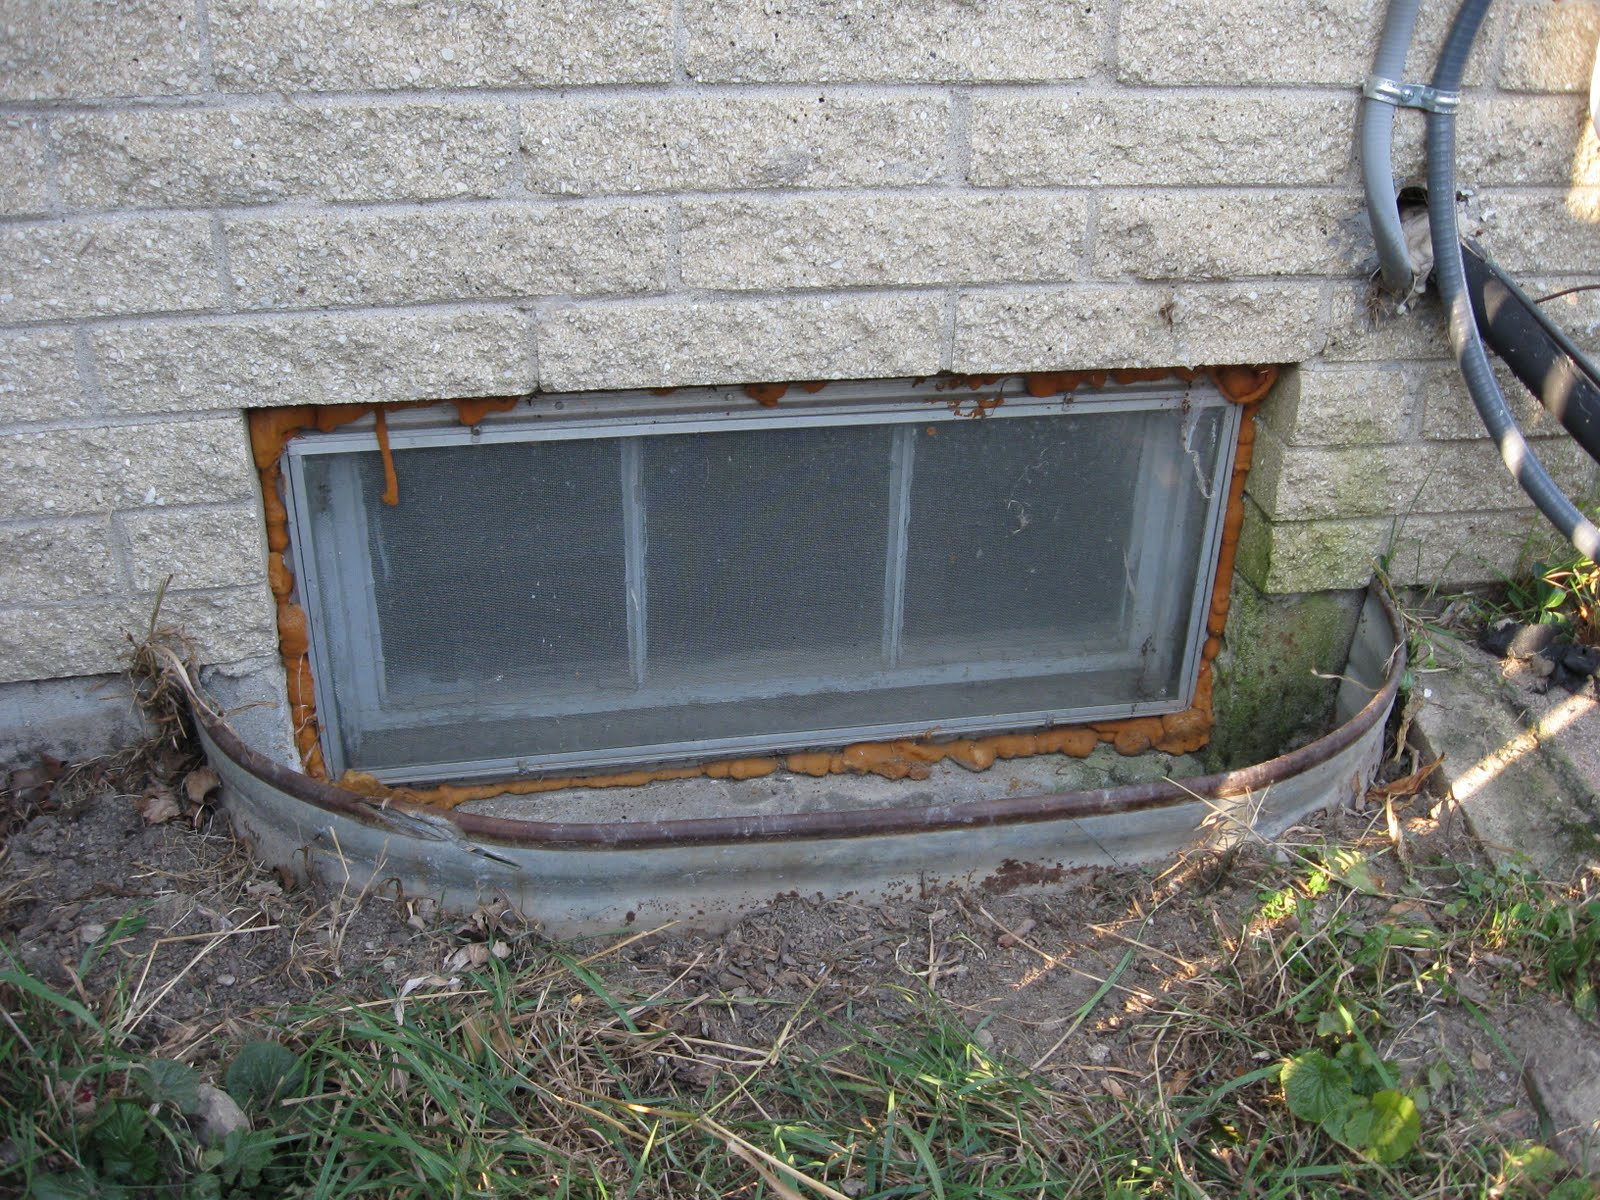 the new window well which is about 8 inches deeper than the originals